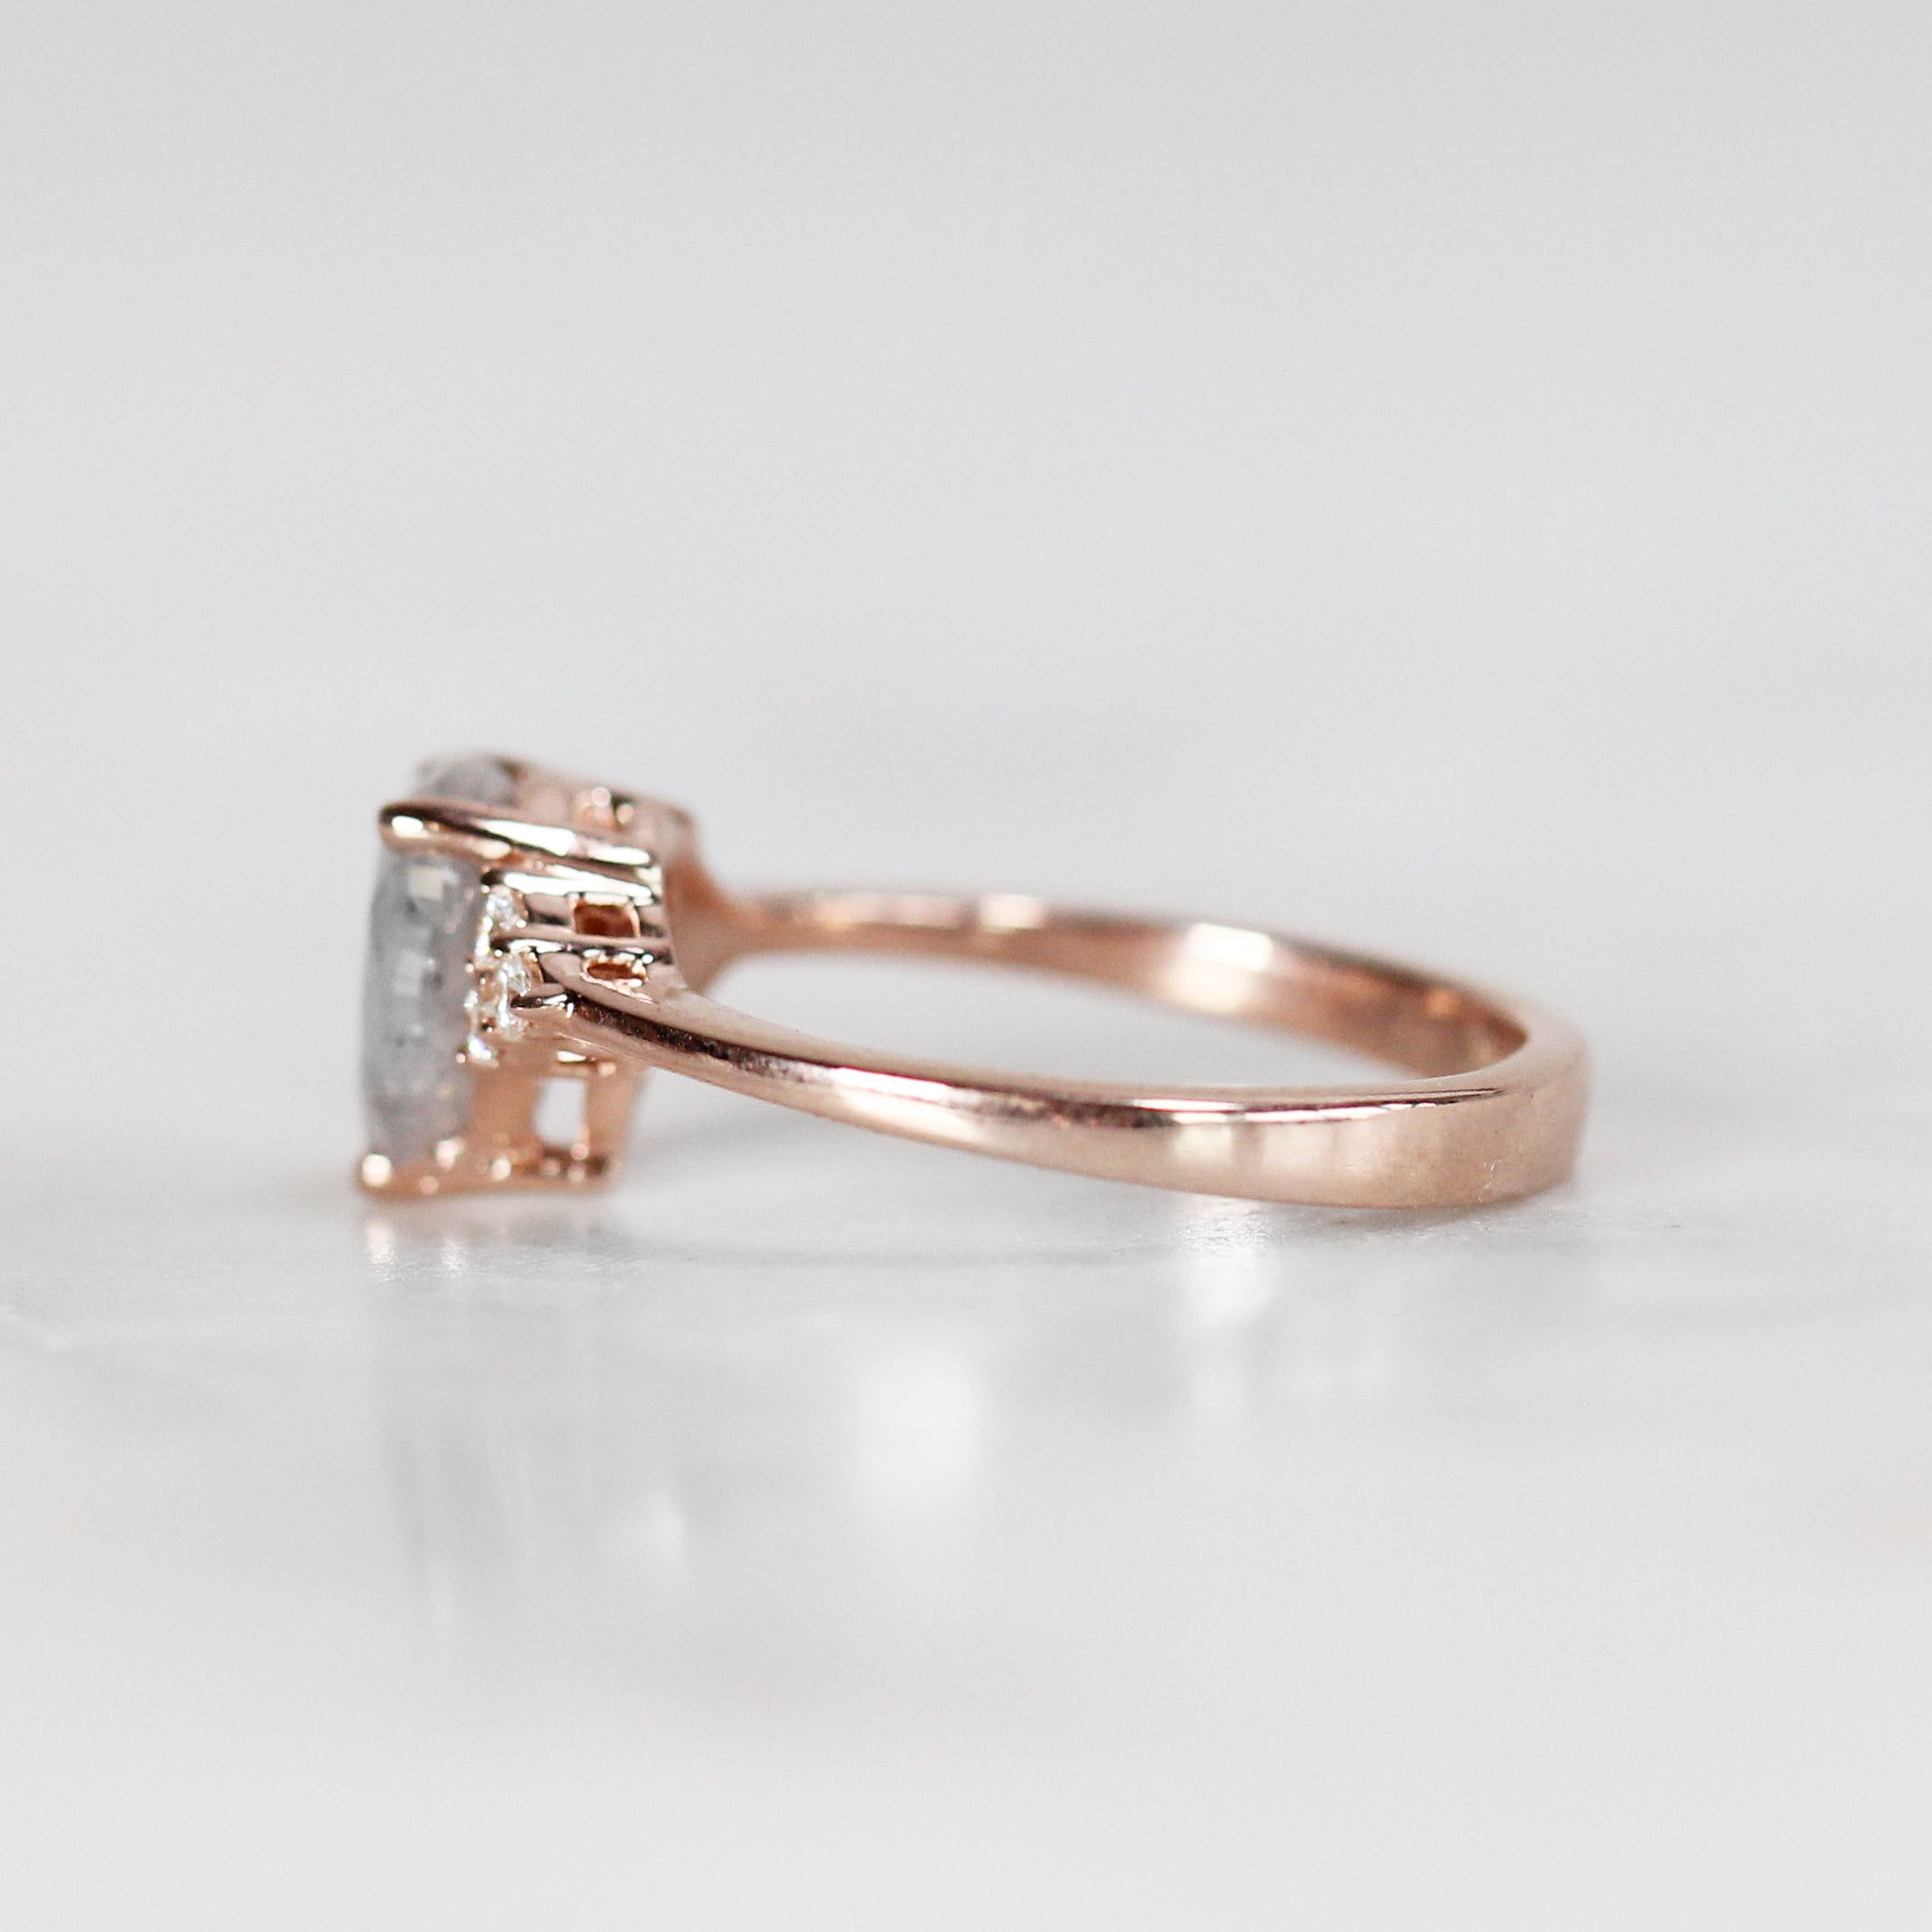 Imogene Ring with 1.30 Carat Pear Diamond in 10k Rose Gold - Ready to size and ship - Celestial Diamonds ® by Midwinter Co.